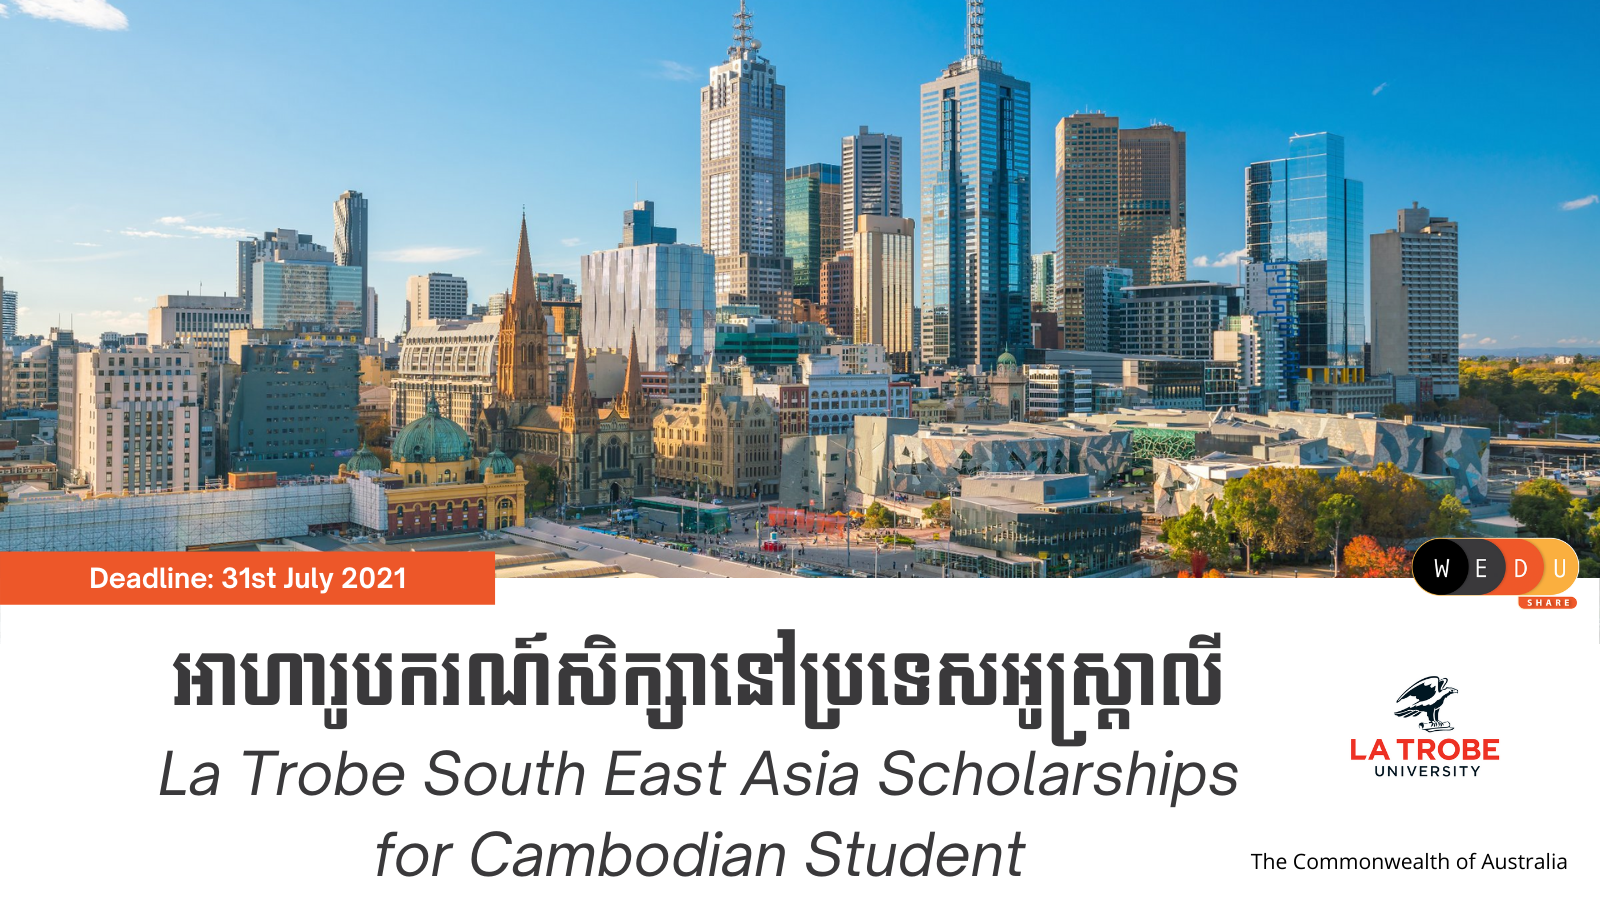 La Trobe South East Asia Scholarships for Cambodian Student